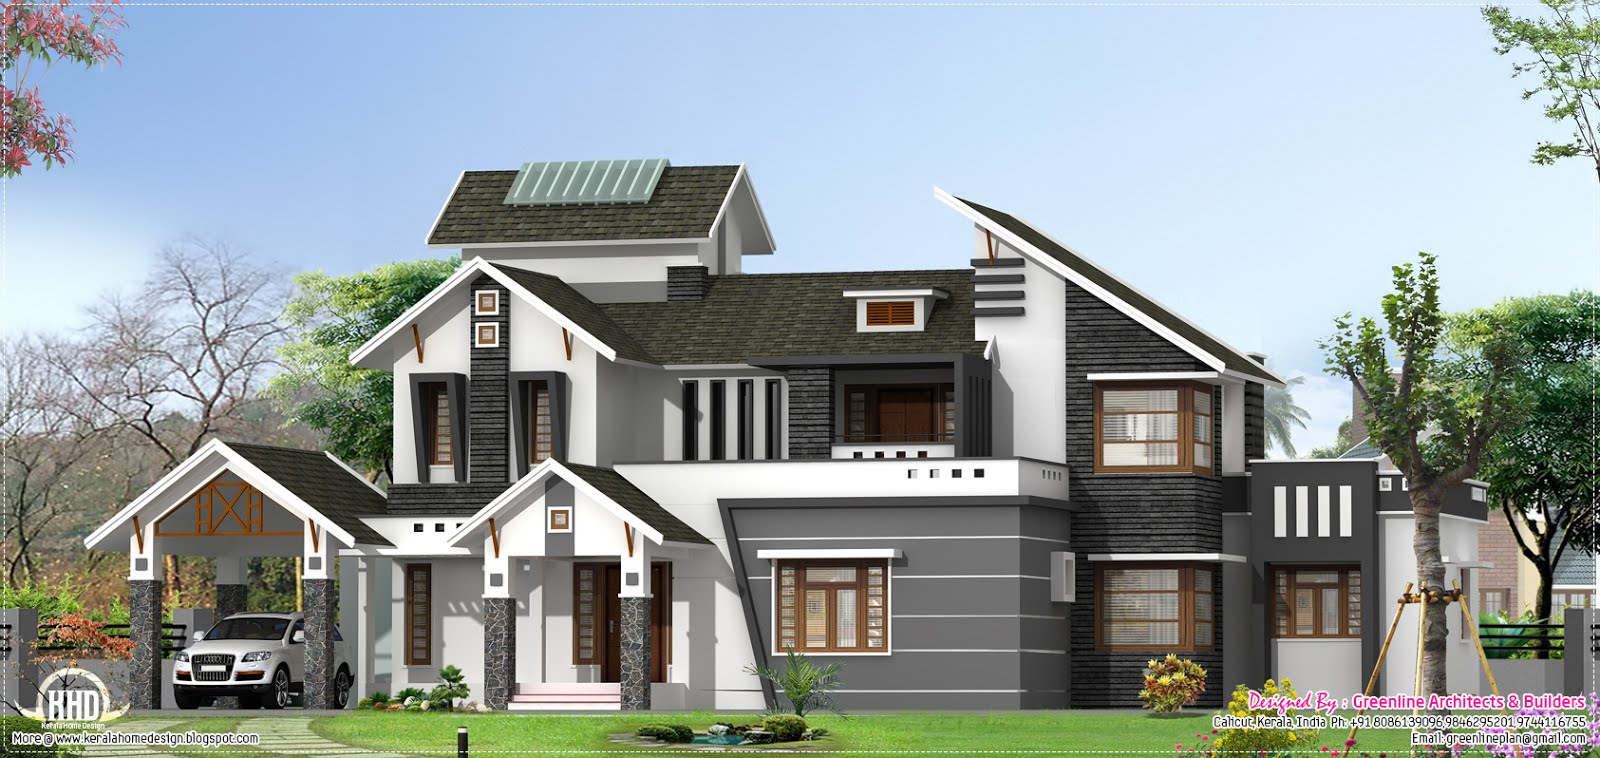 Modern 5 bedroom home design kerala home design and Modern home design